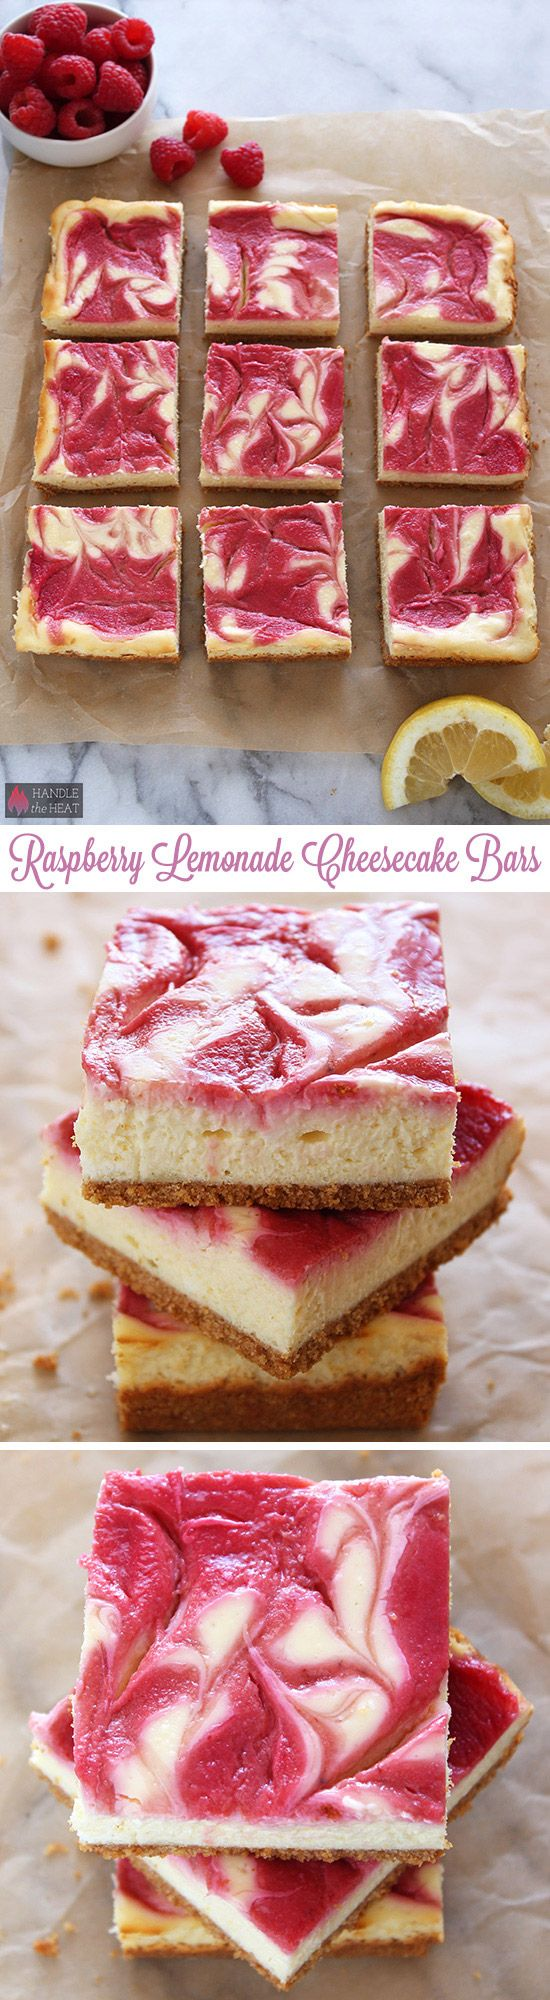 Raspberry Lemonade Cheesecake Bars - pretty summer dessert!